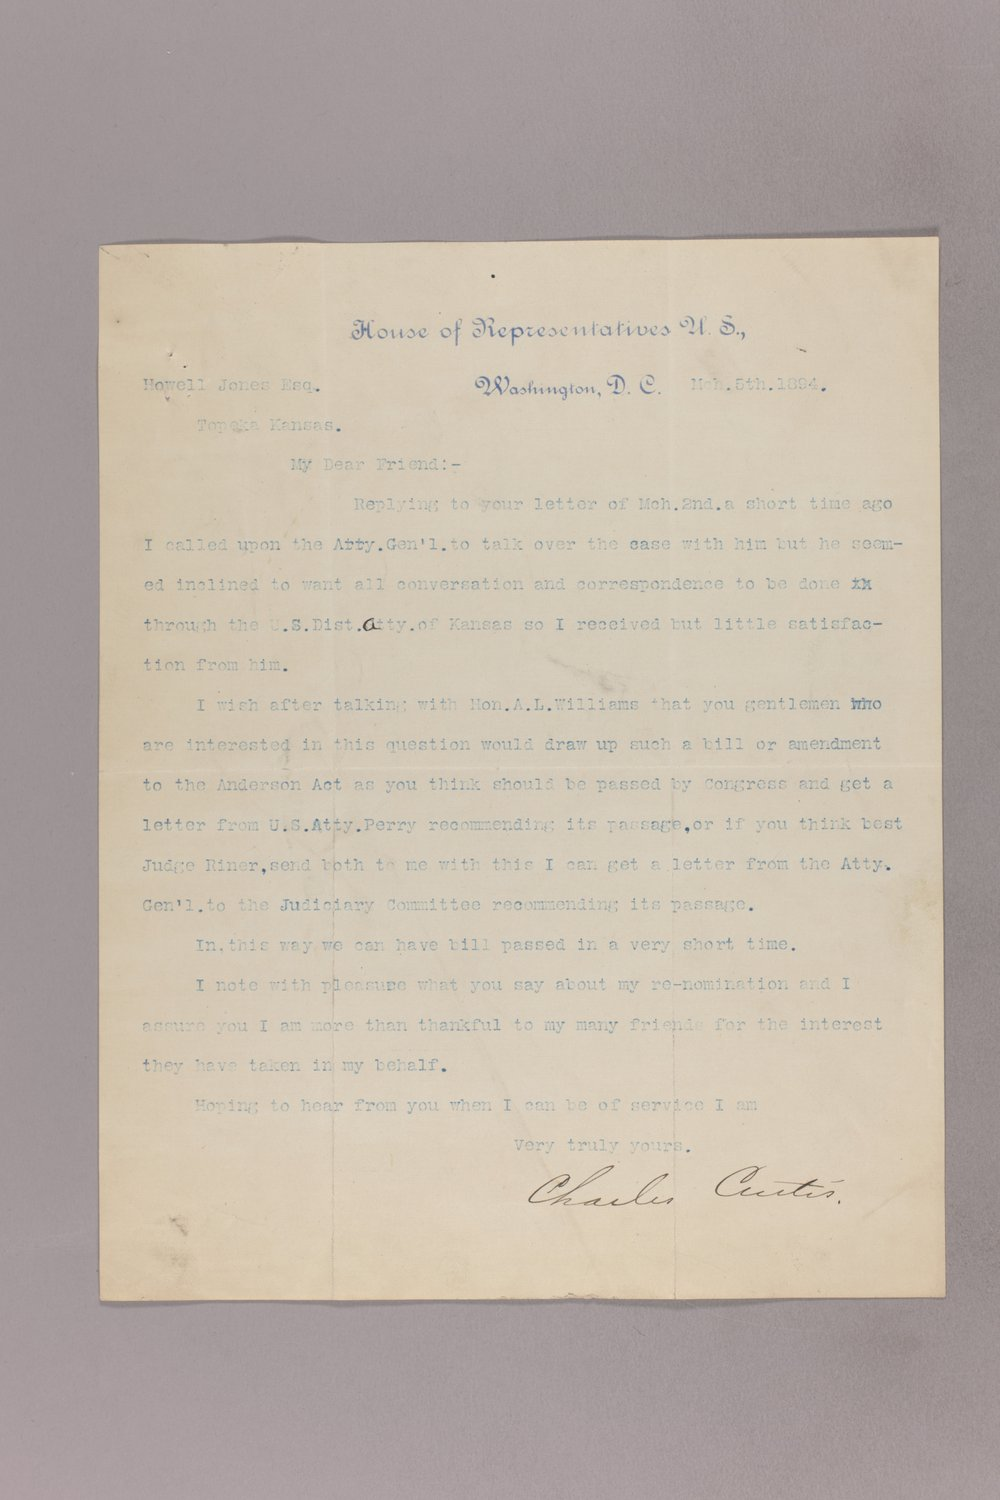 Charles Curits correspondence, 1894 - 1 March 05, 1894